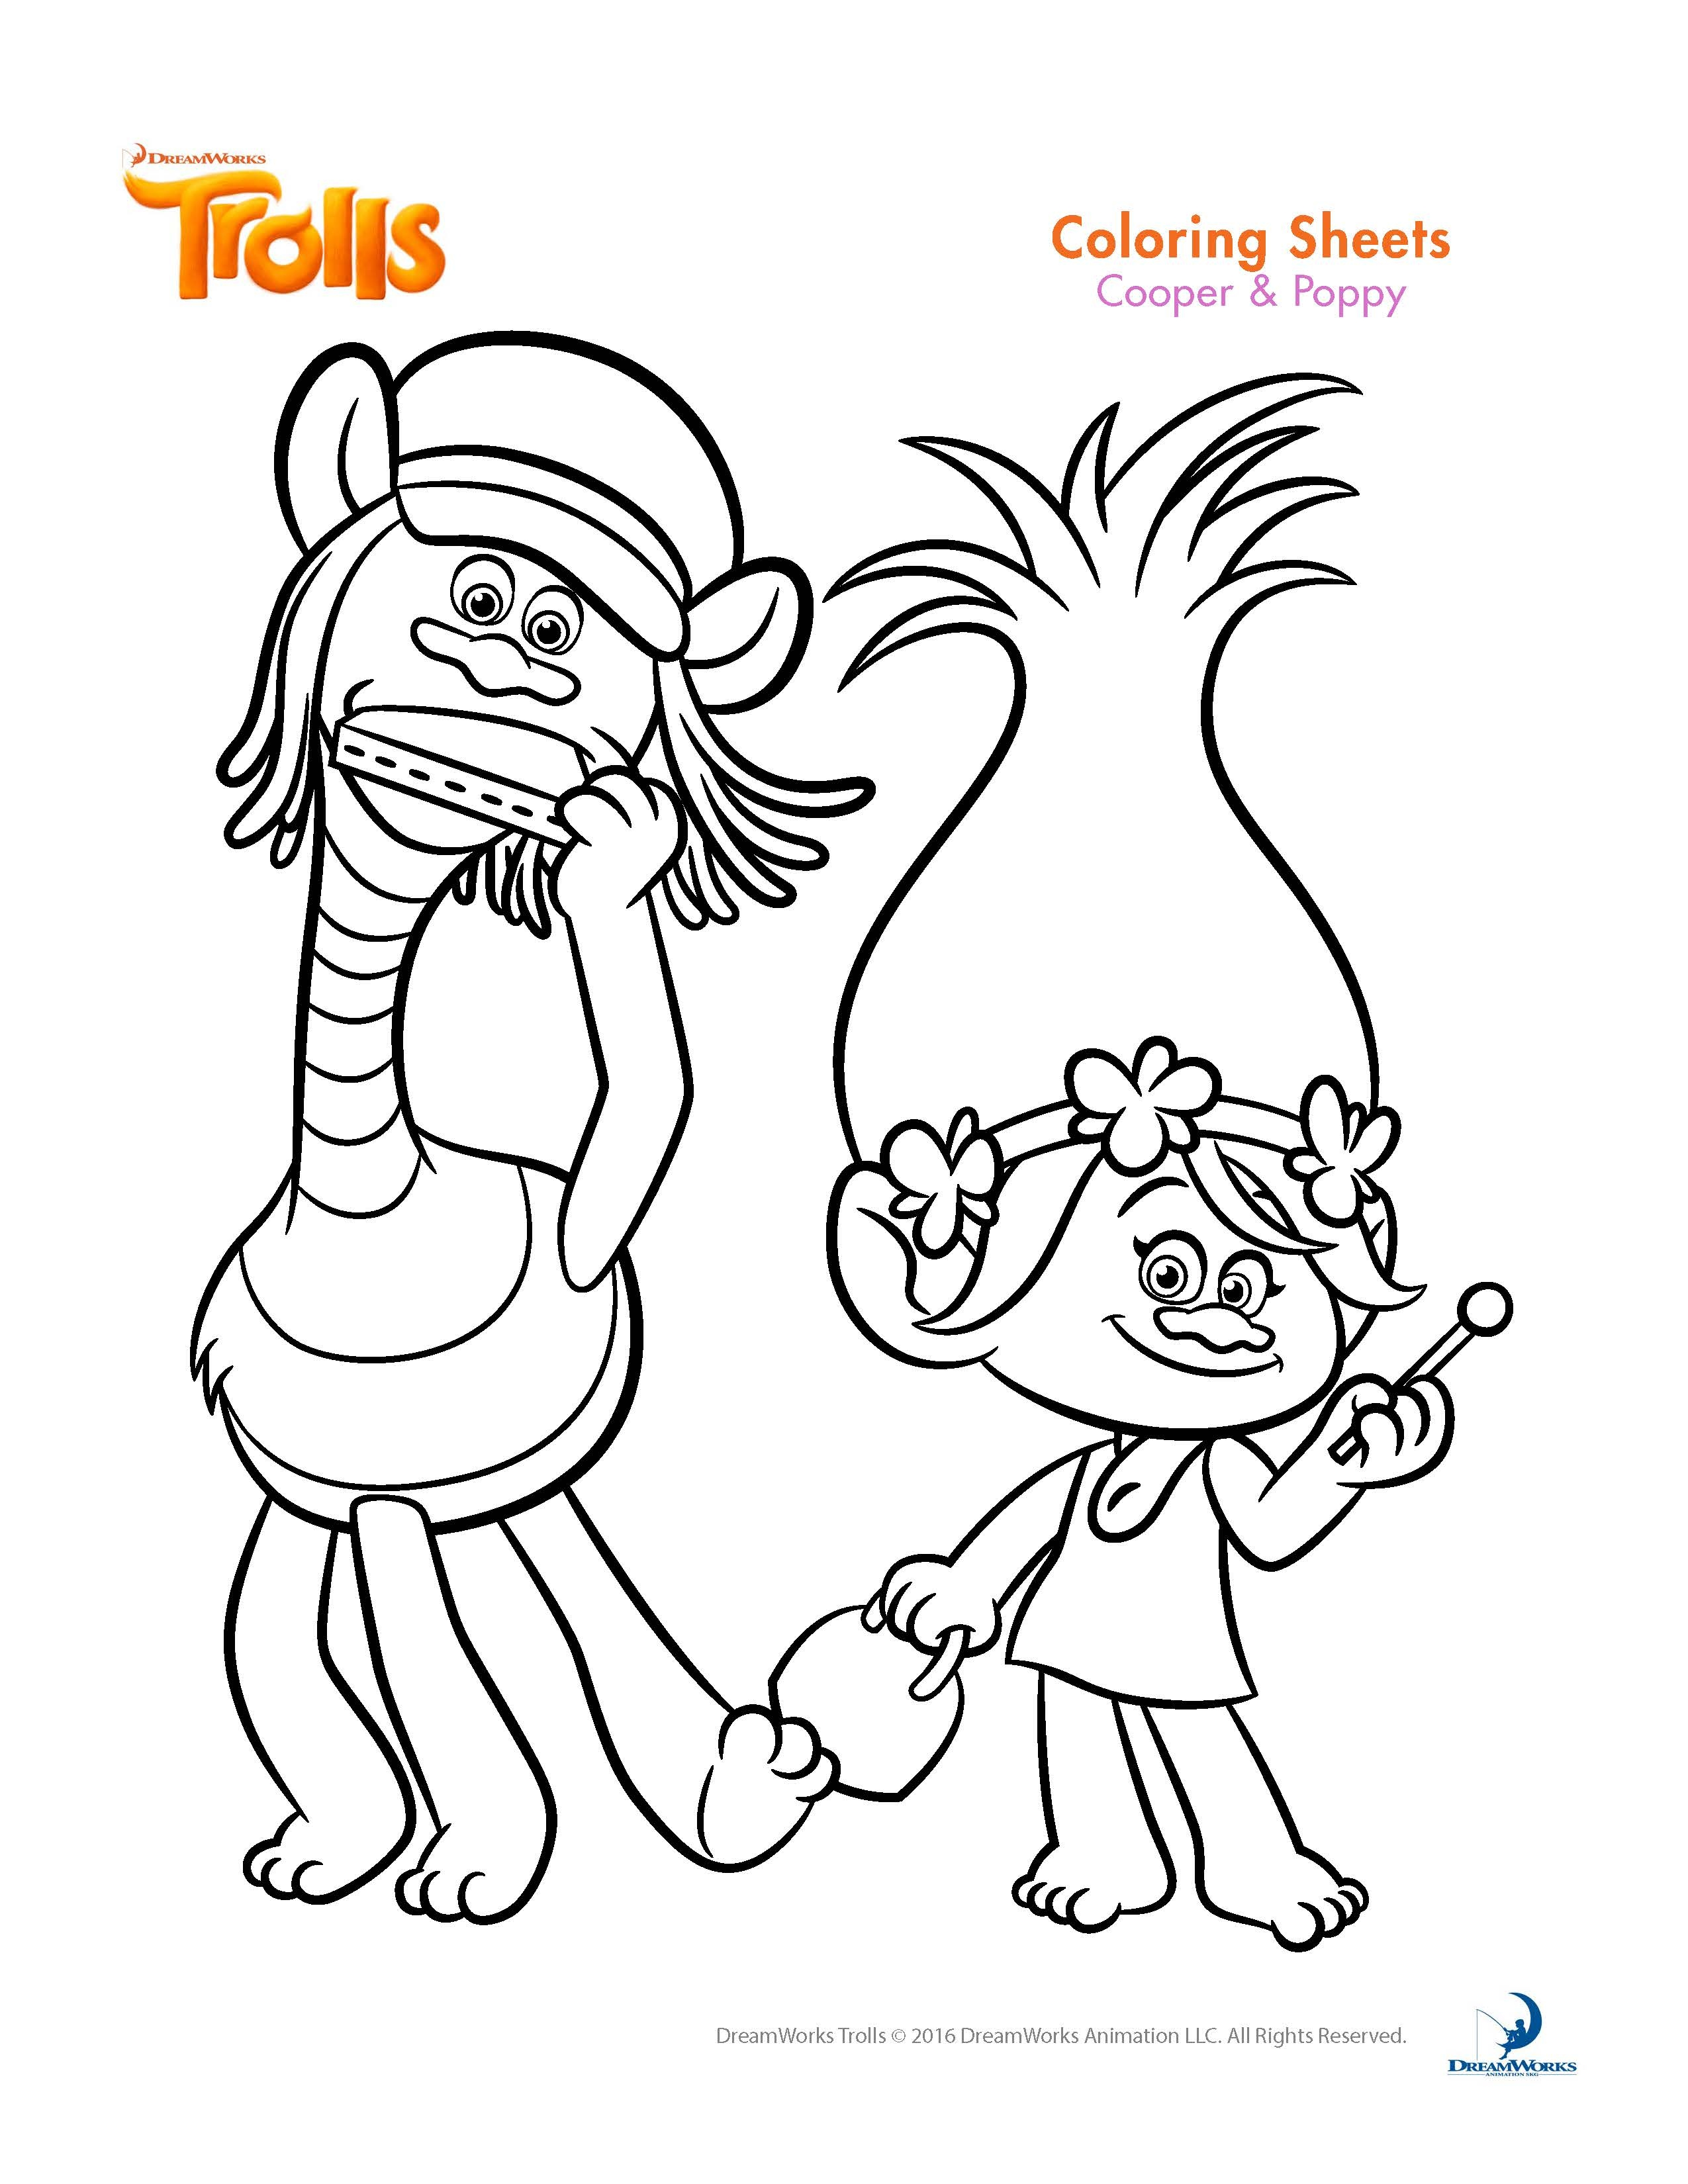 printable trolls coloring pages - trolls dreamworks coloring sheet sketch templates